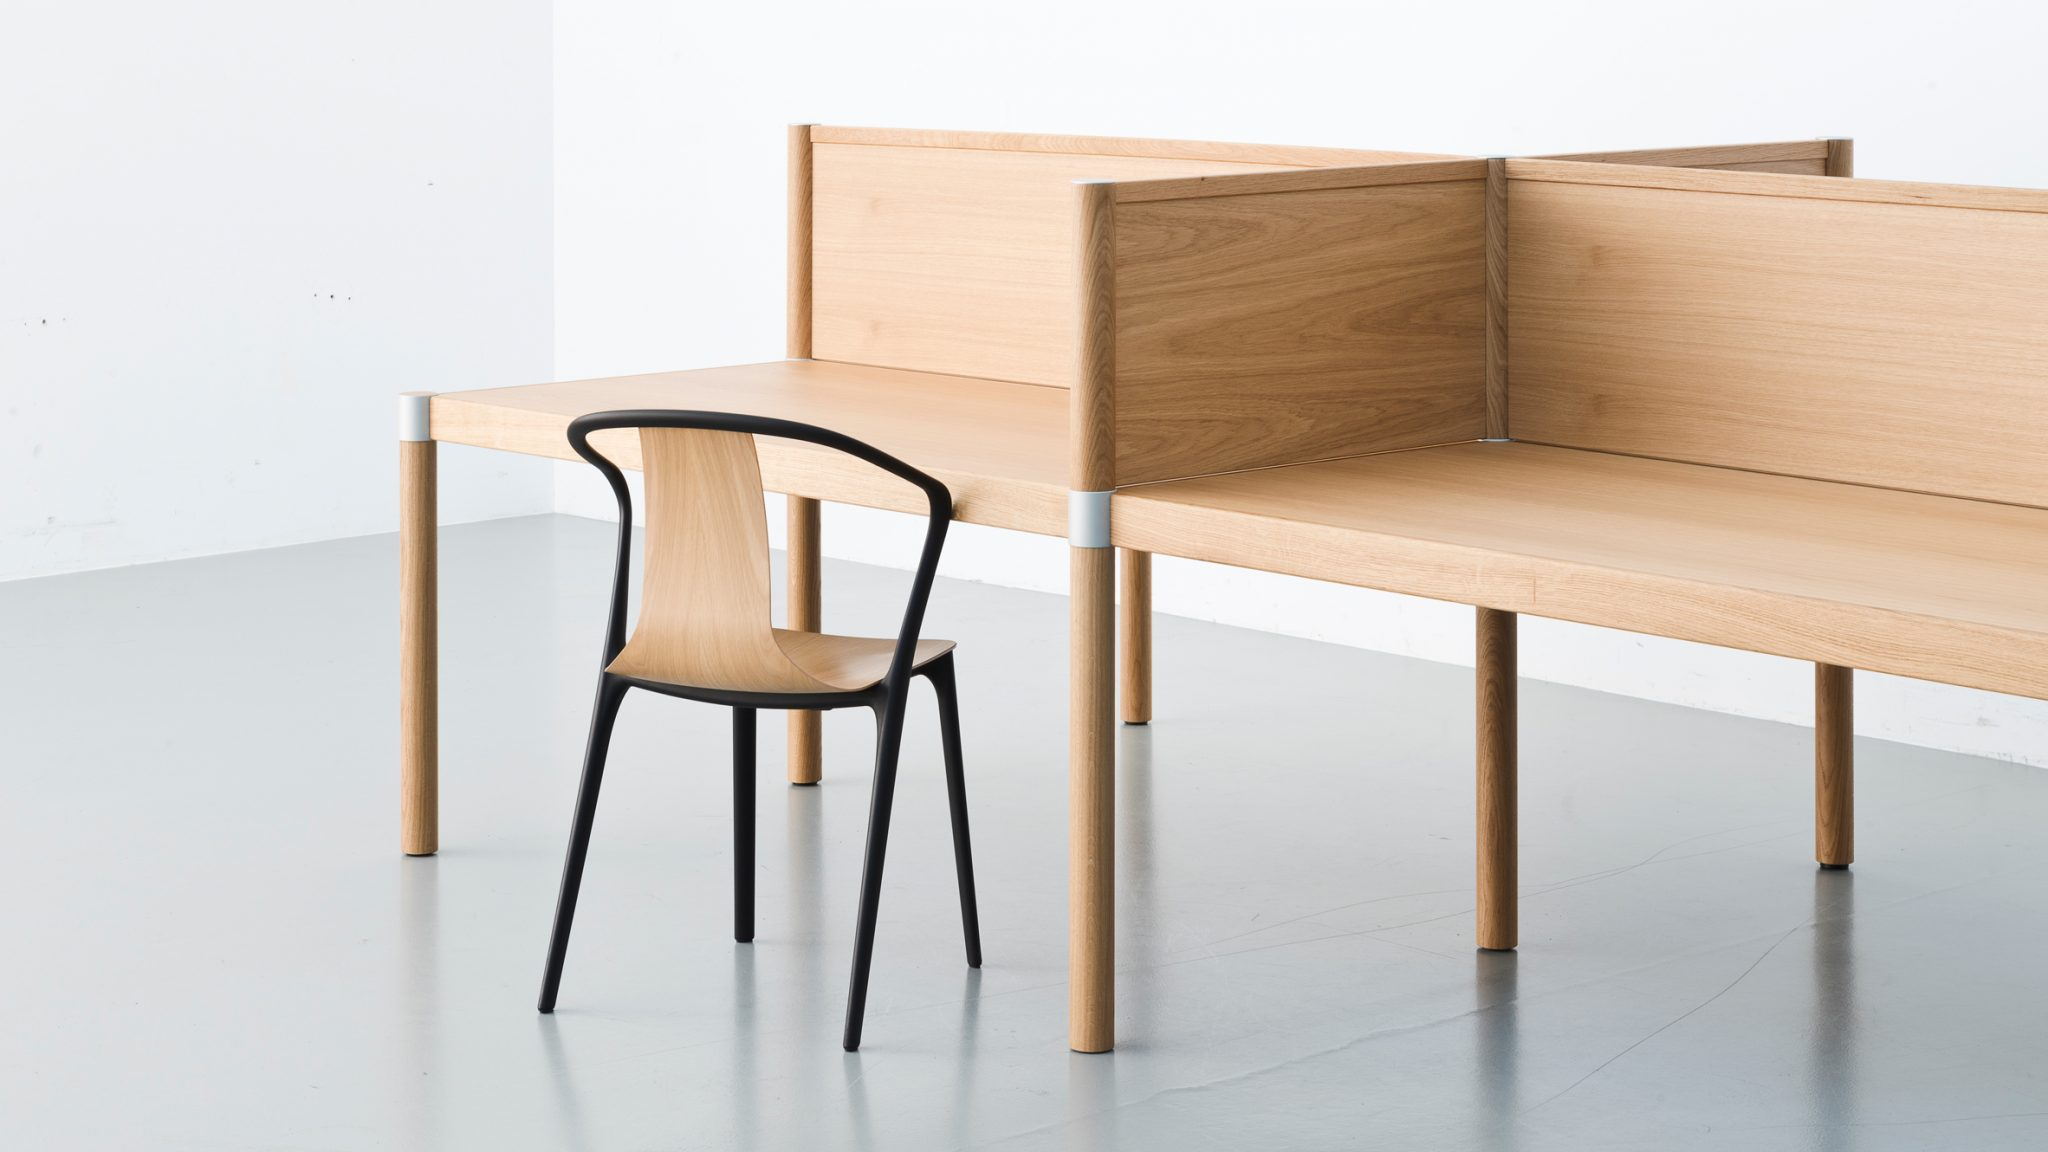 orgatec-bouroullec-brothers-vitra-design-office-furniture_dezeen_hero